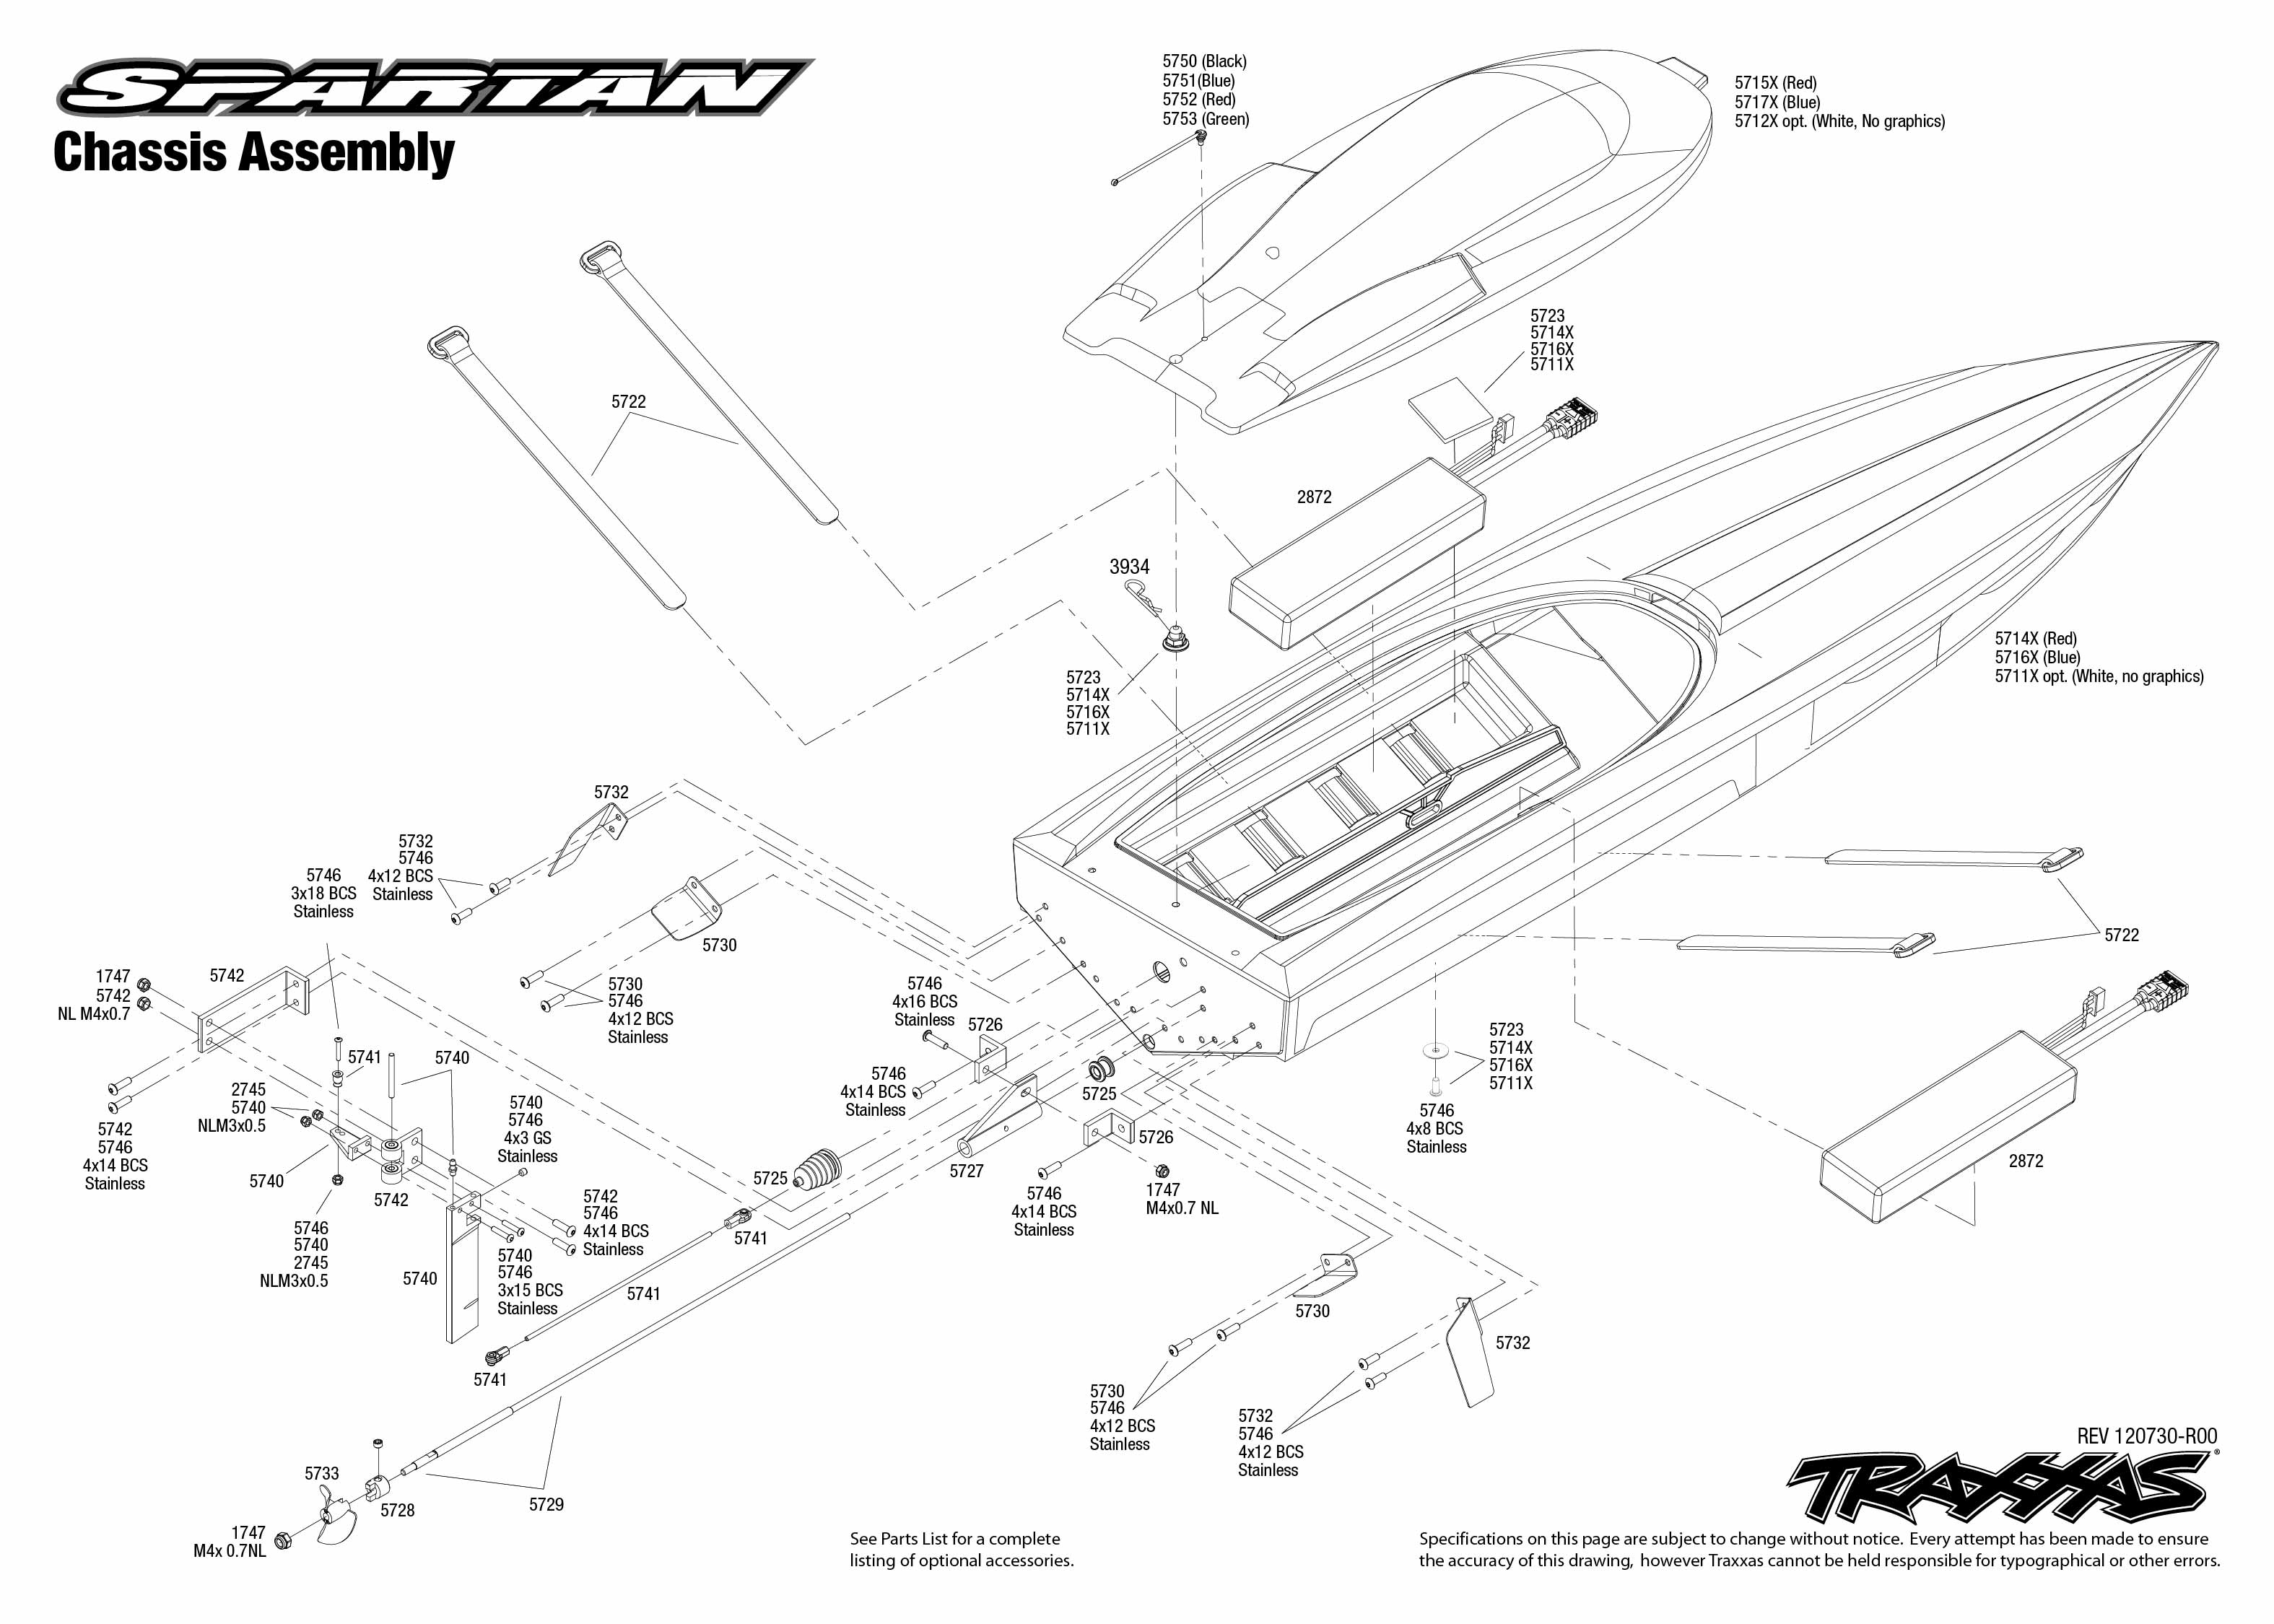 5707 chassis exploded view  spartan  vxl